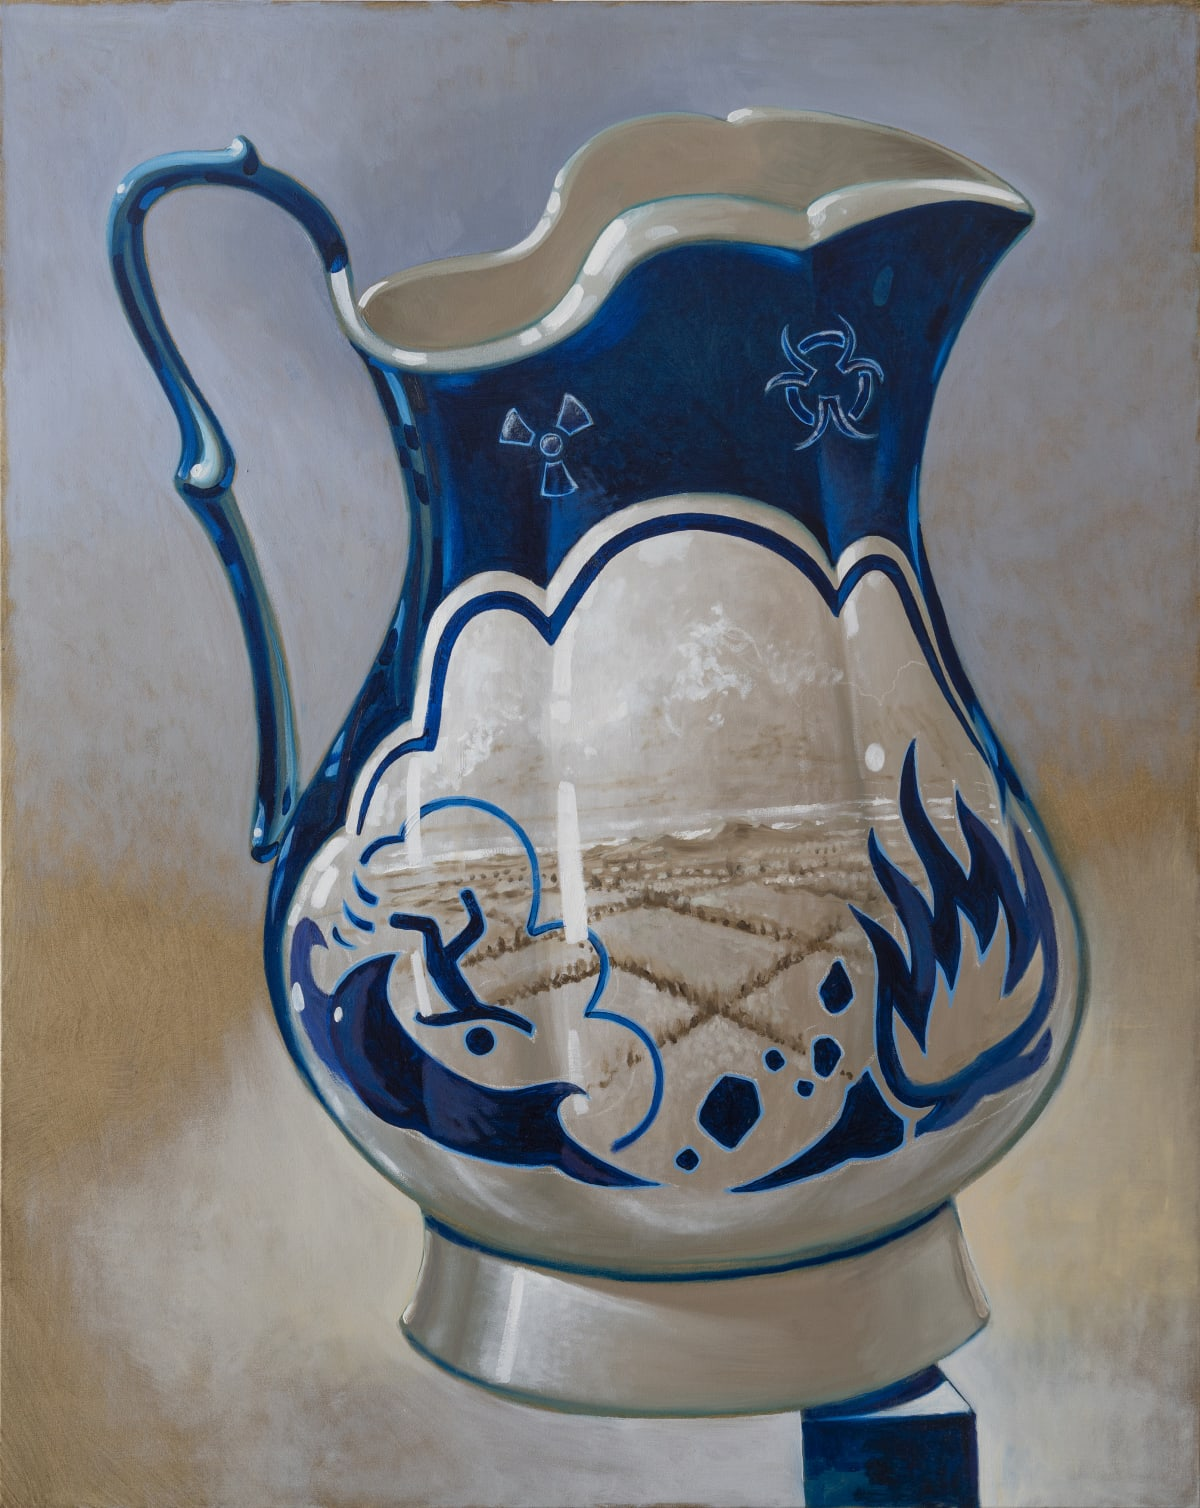 Derek Cowie Blue Jug, 2019 Oil on canvas 1520mm x 1210mm